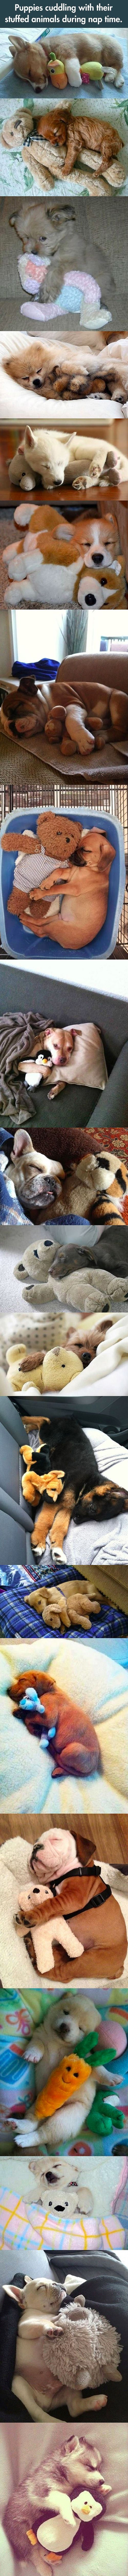 Cuteness overload! This is just too adorable! <3 #CutePuppies @PetPremium Pet Insurance Pet Insurance